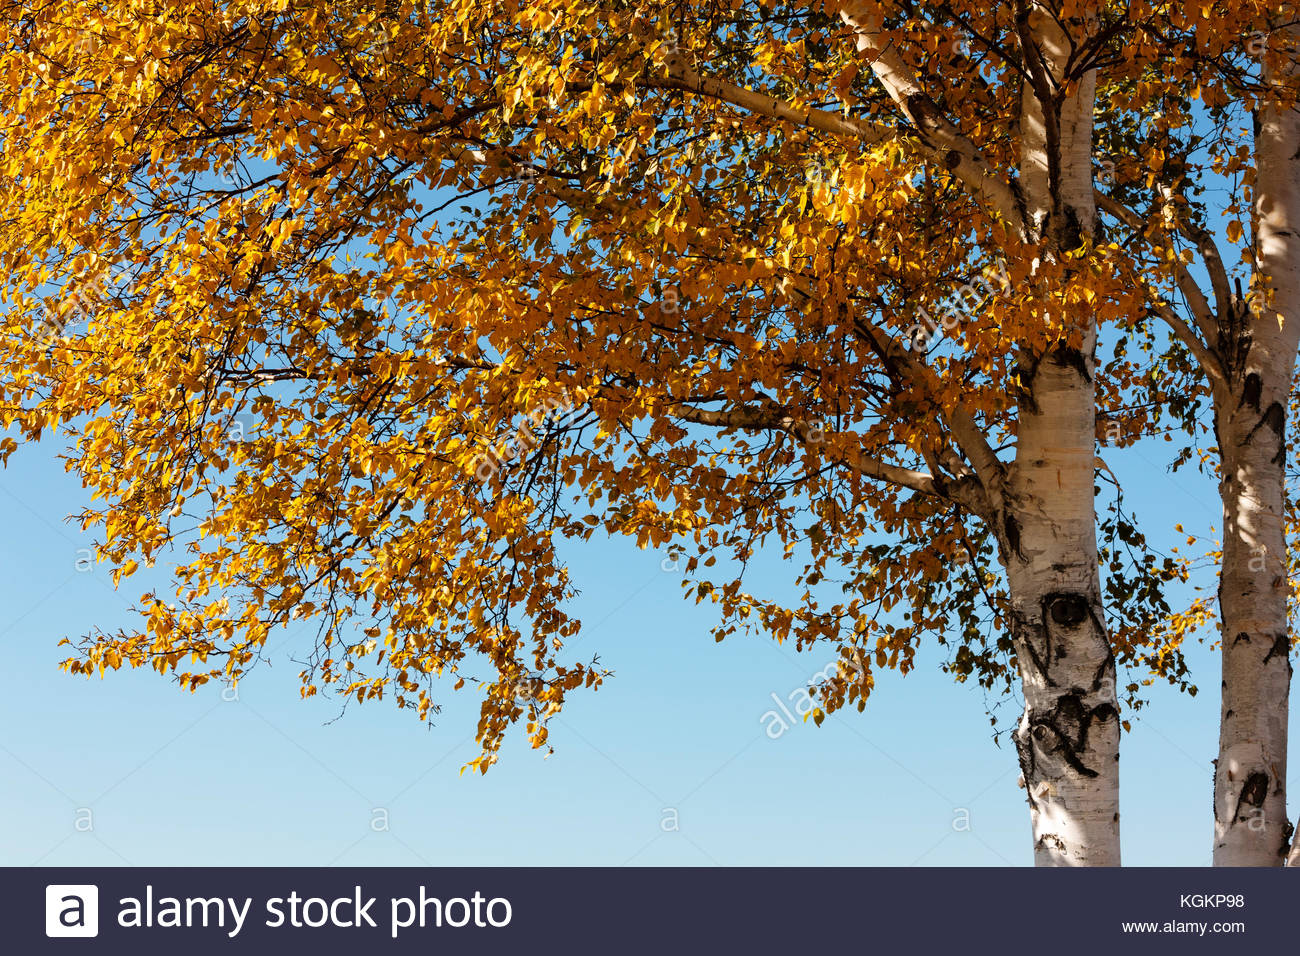 Birch trees, with the leaves changing colors in late October, contrast with the autumn morning sky in the Horicon - Stock Image